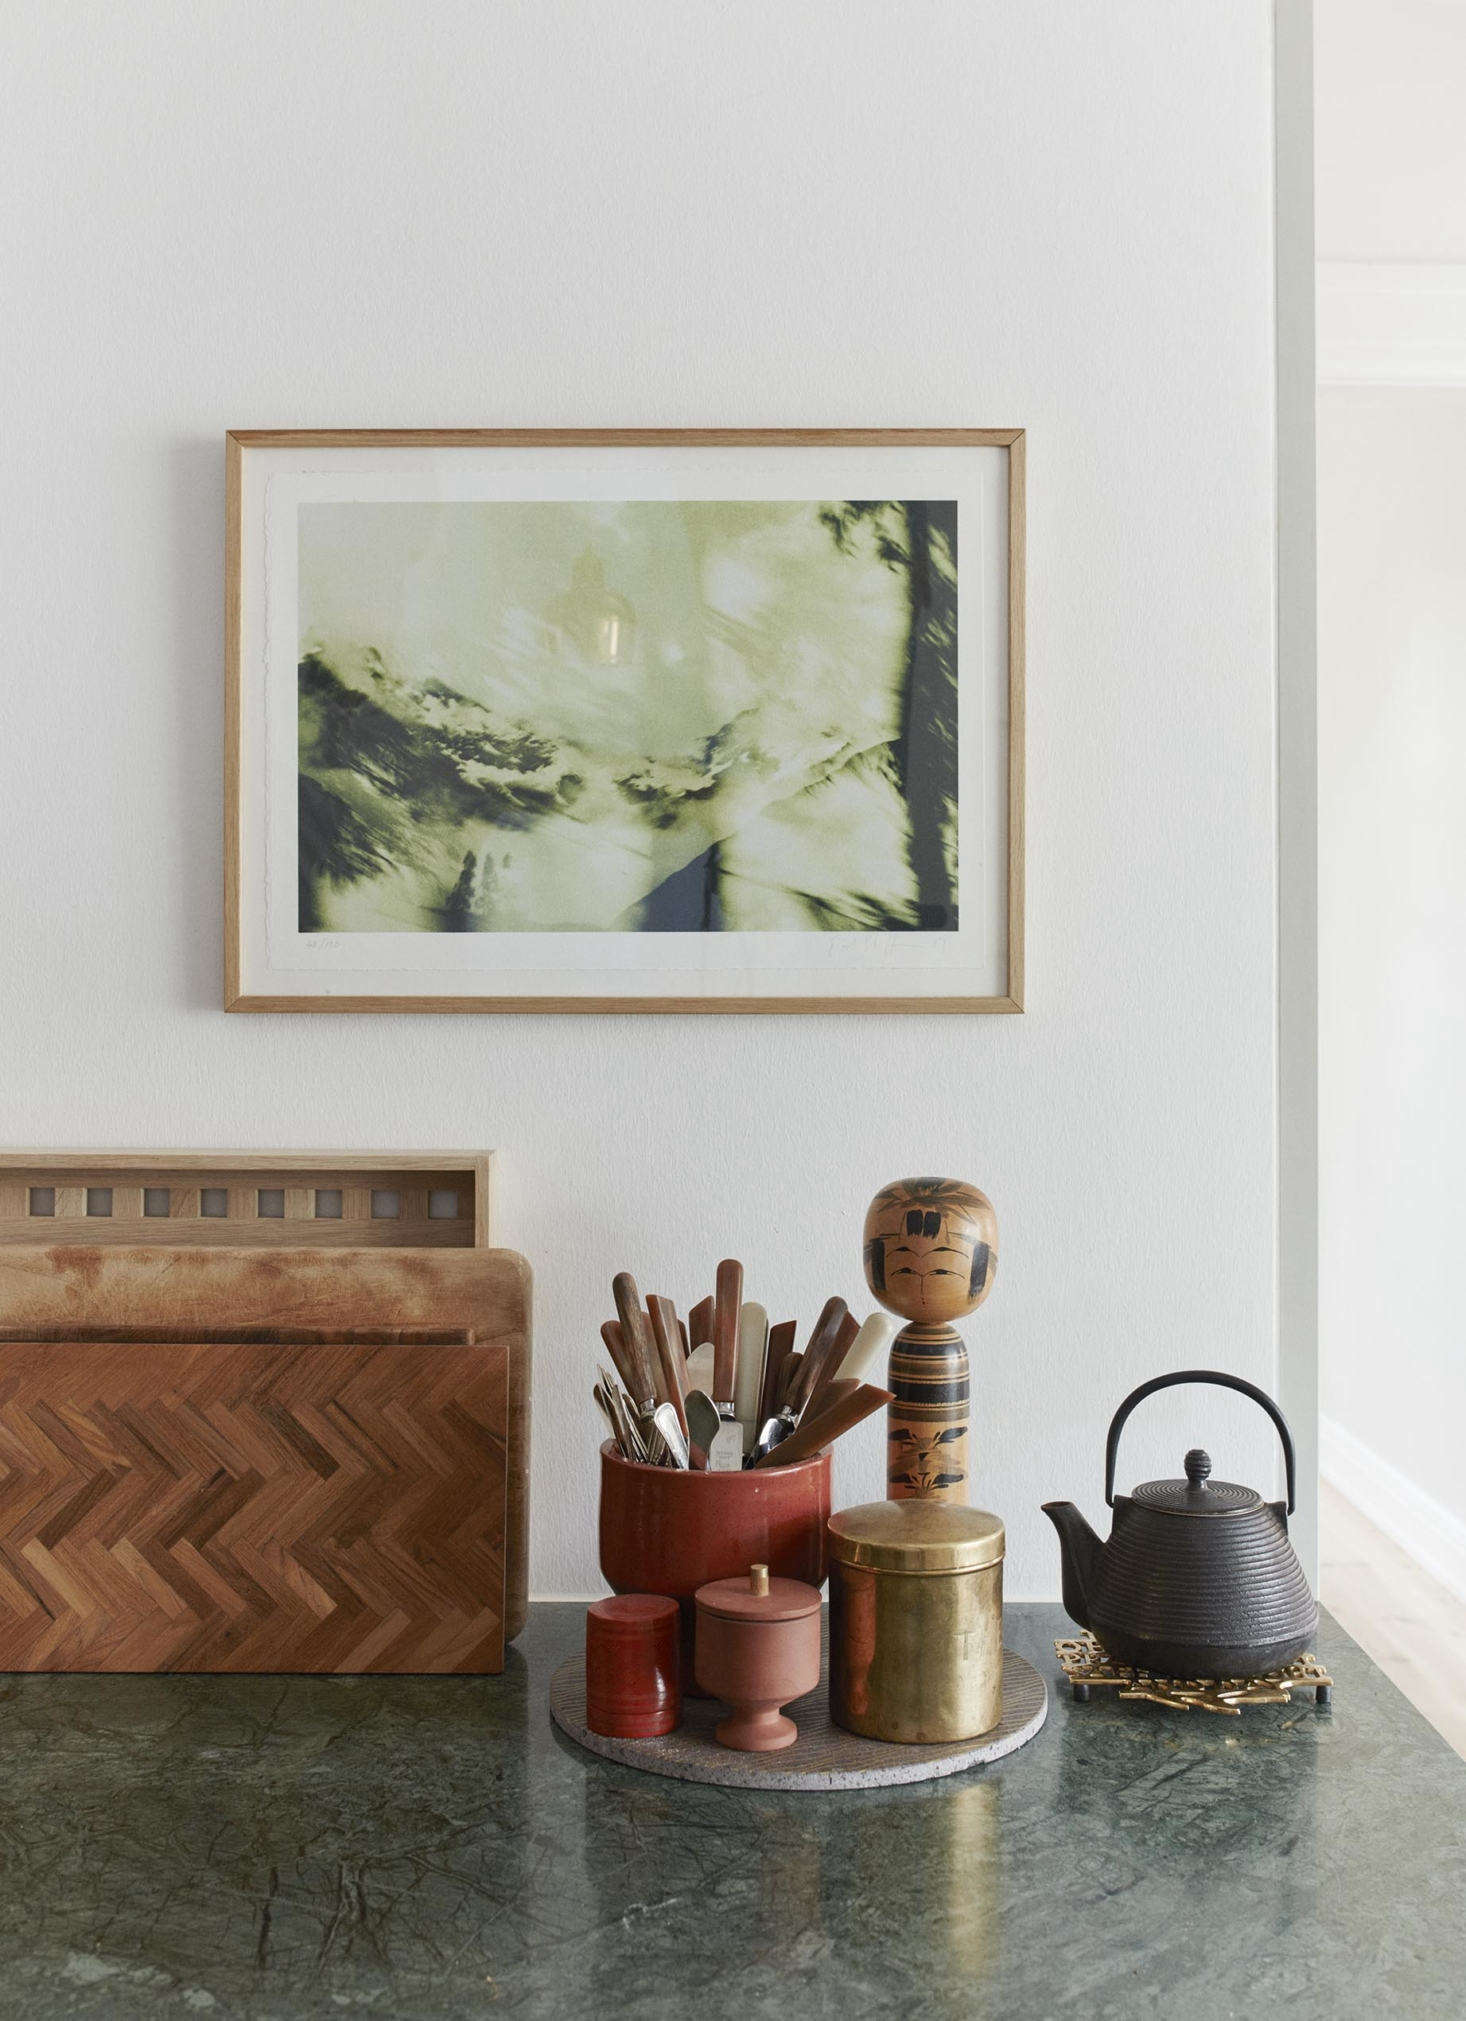 A tray corrals a few kitchen essentials, including a petite terra cotta Edge Sugar Bowl, designed by Copenhagen-based design duo Stilleben, and a vase full of utensils. (For a look at a few of the company&#8